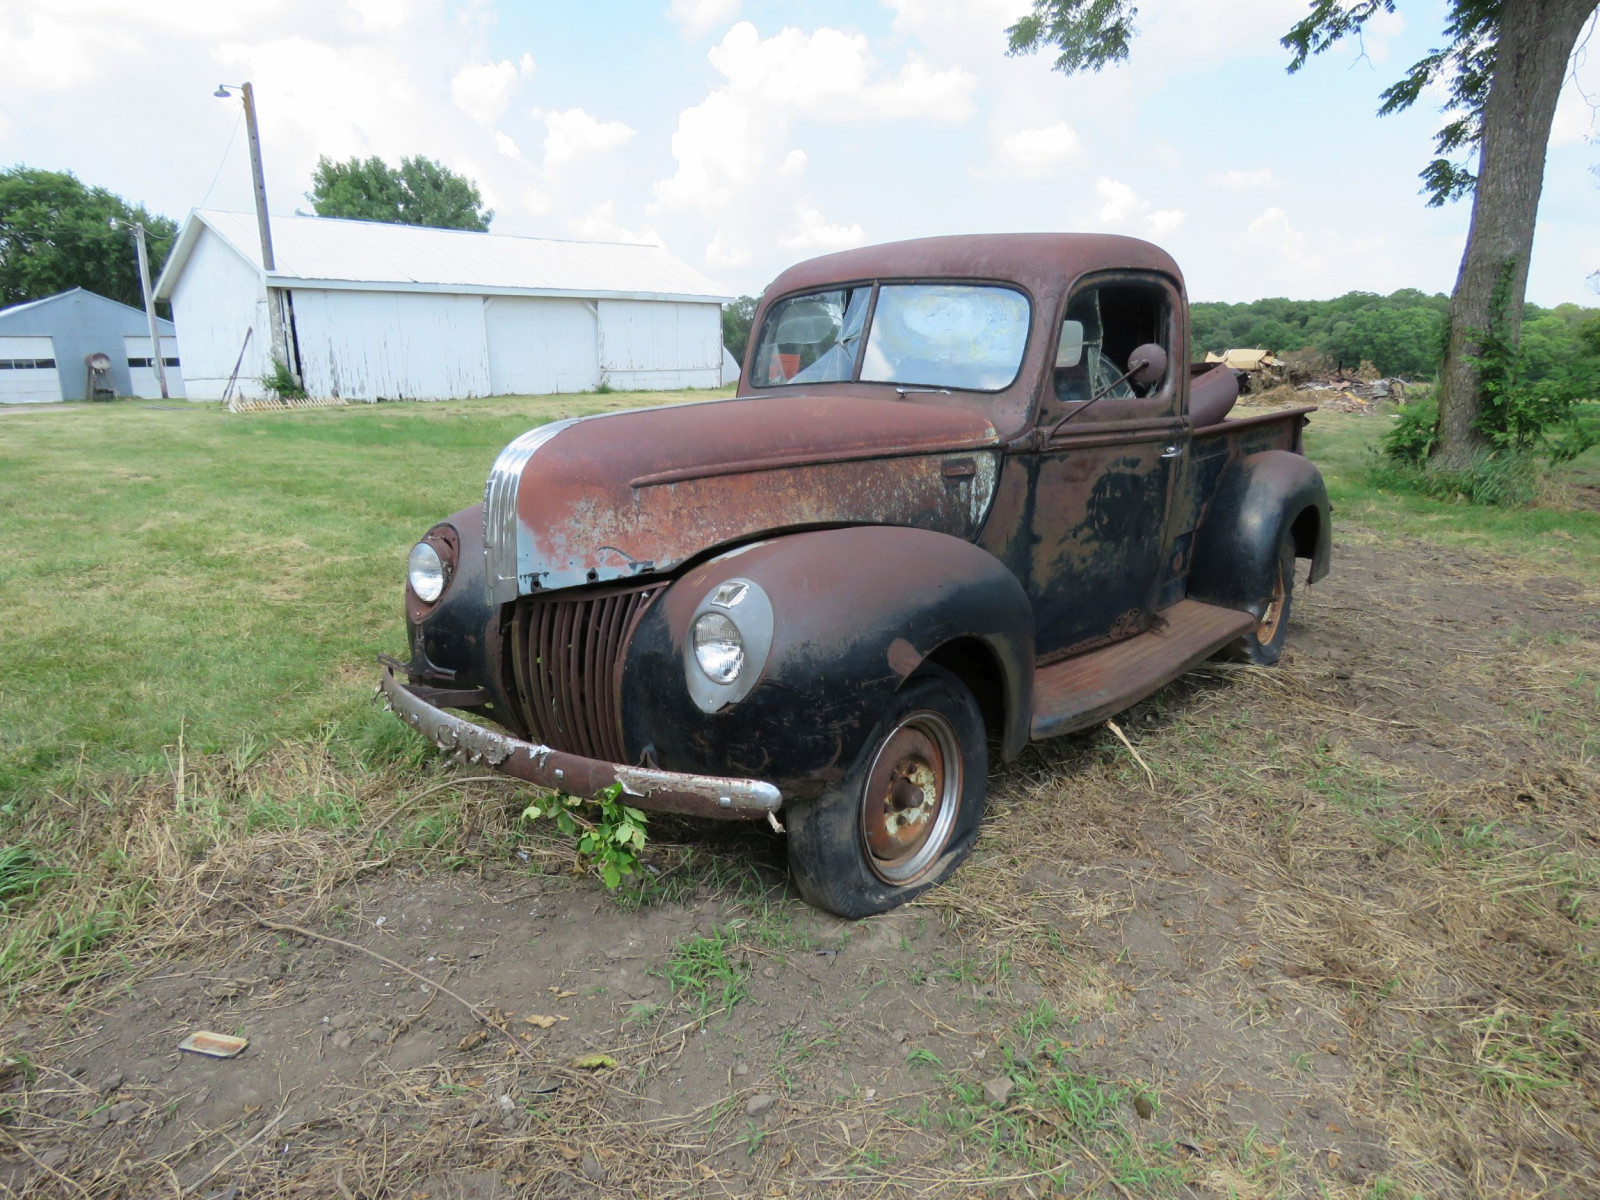 1940 Ford Pickup for Rod or Restore - Image 1